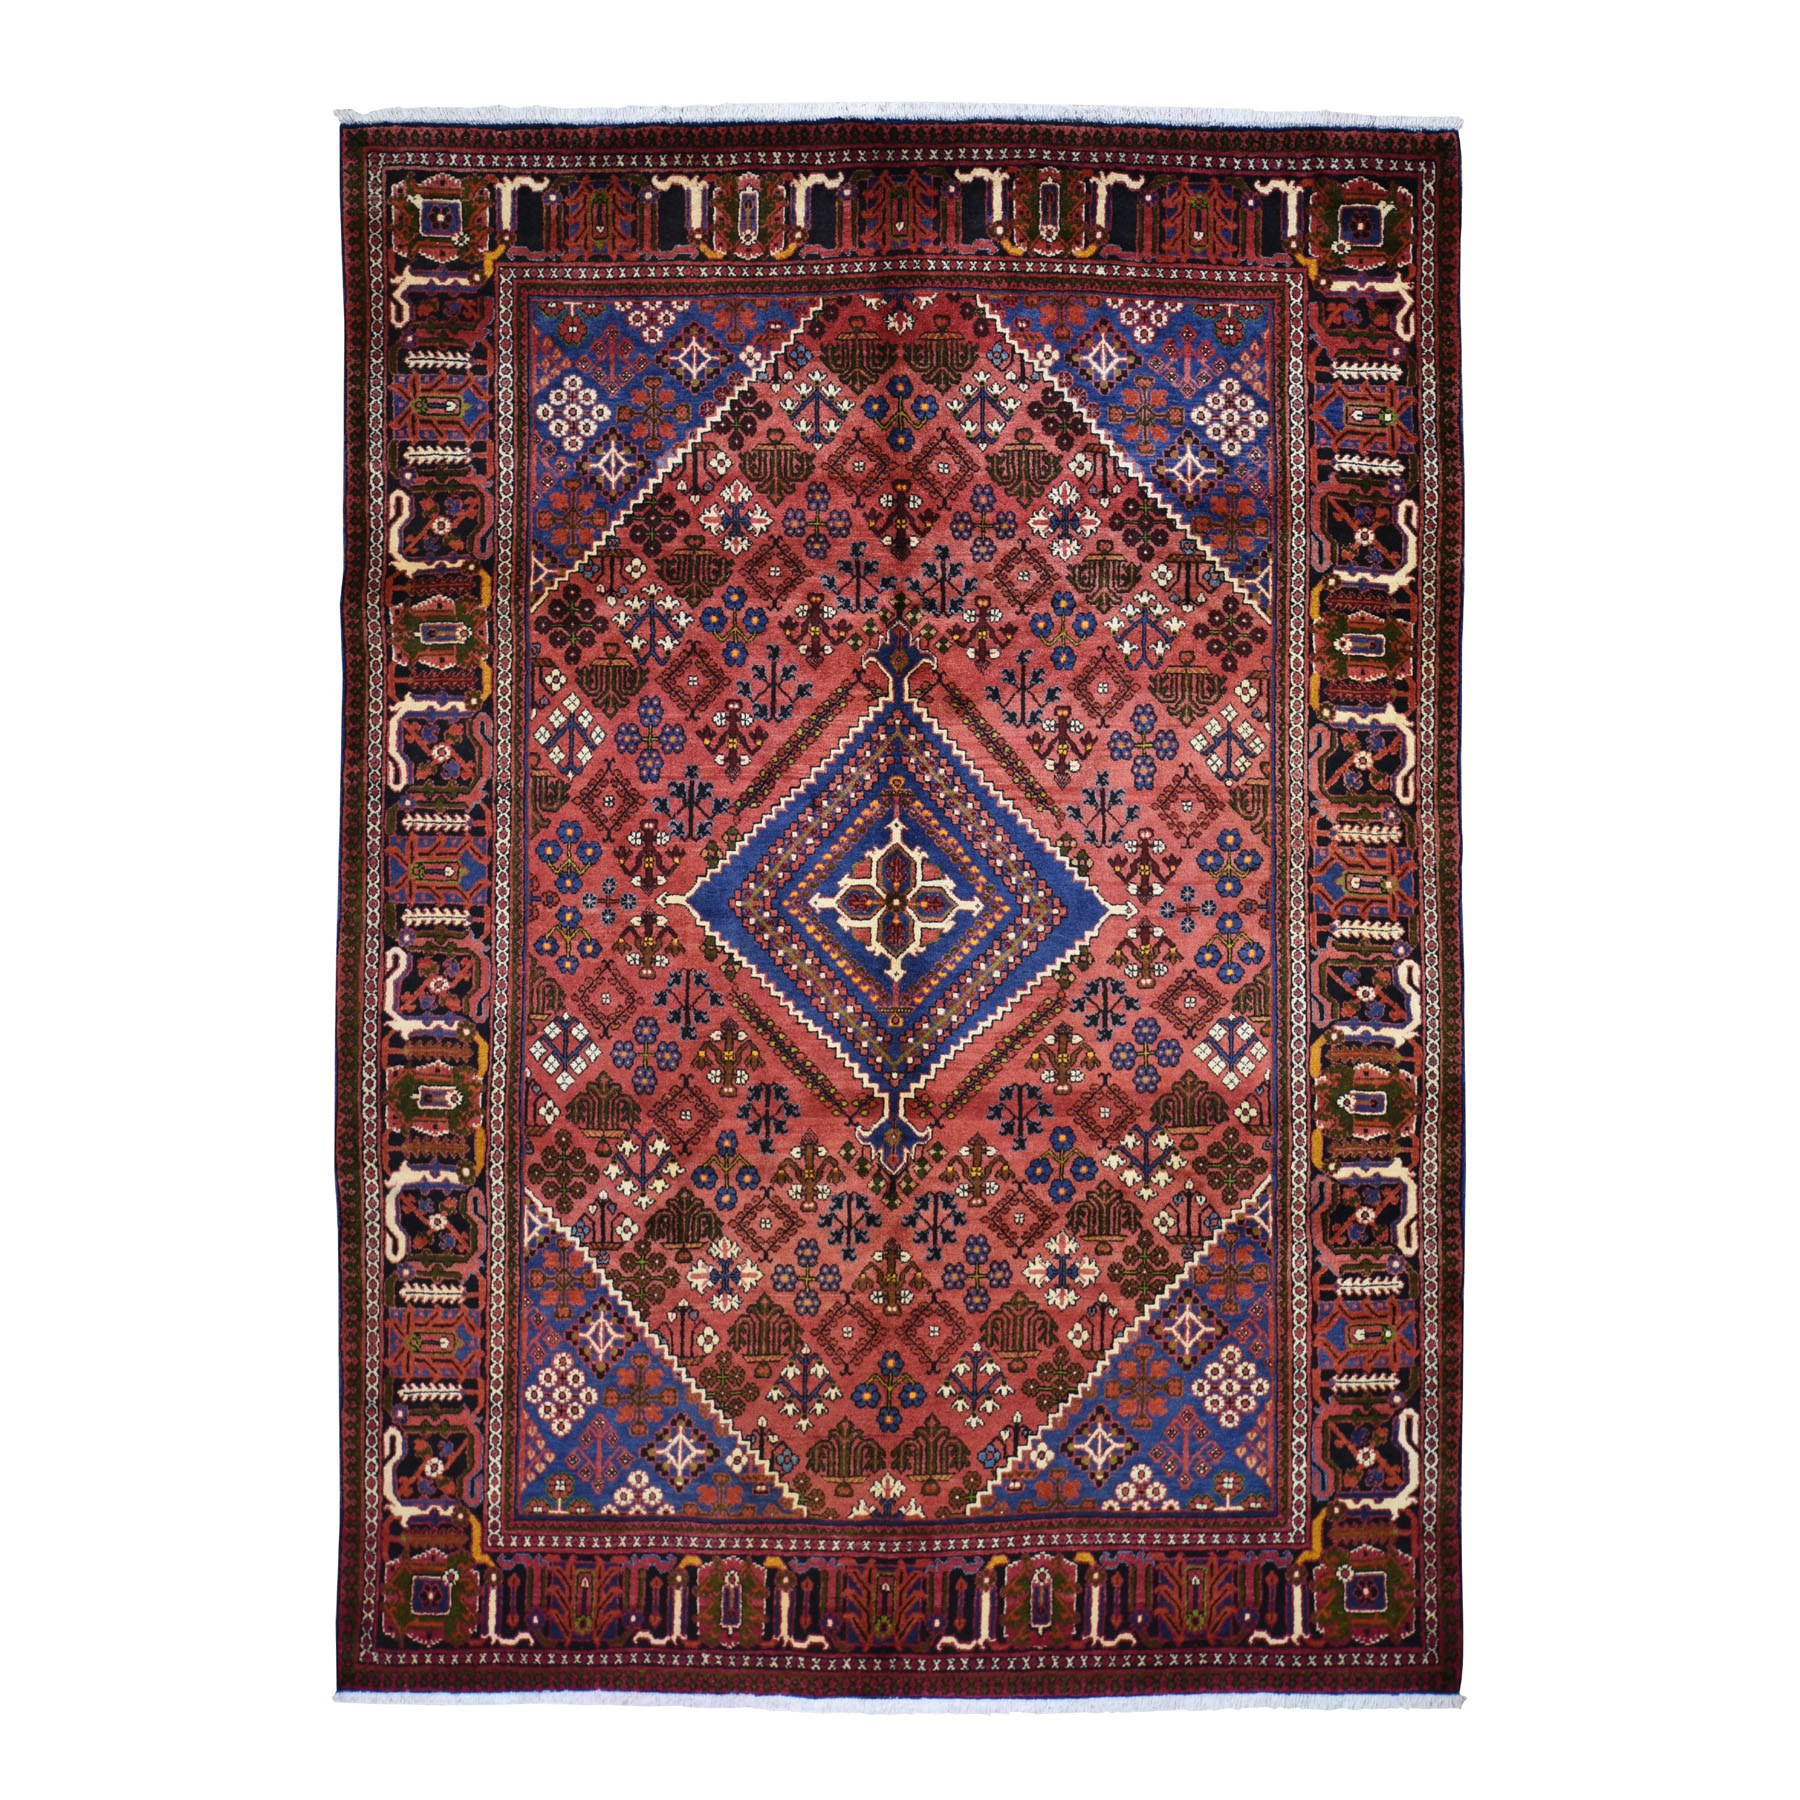 7'X10' Red New Persian Josheghan Full Pile Pure Wool Hand Knotted Oriental Rug moad7d86